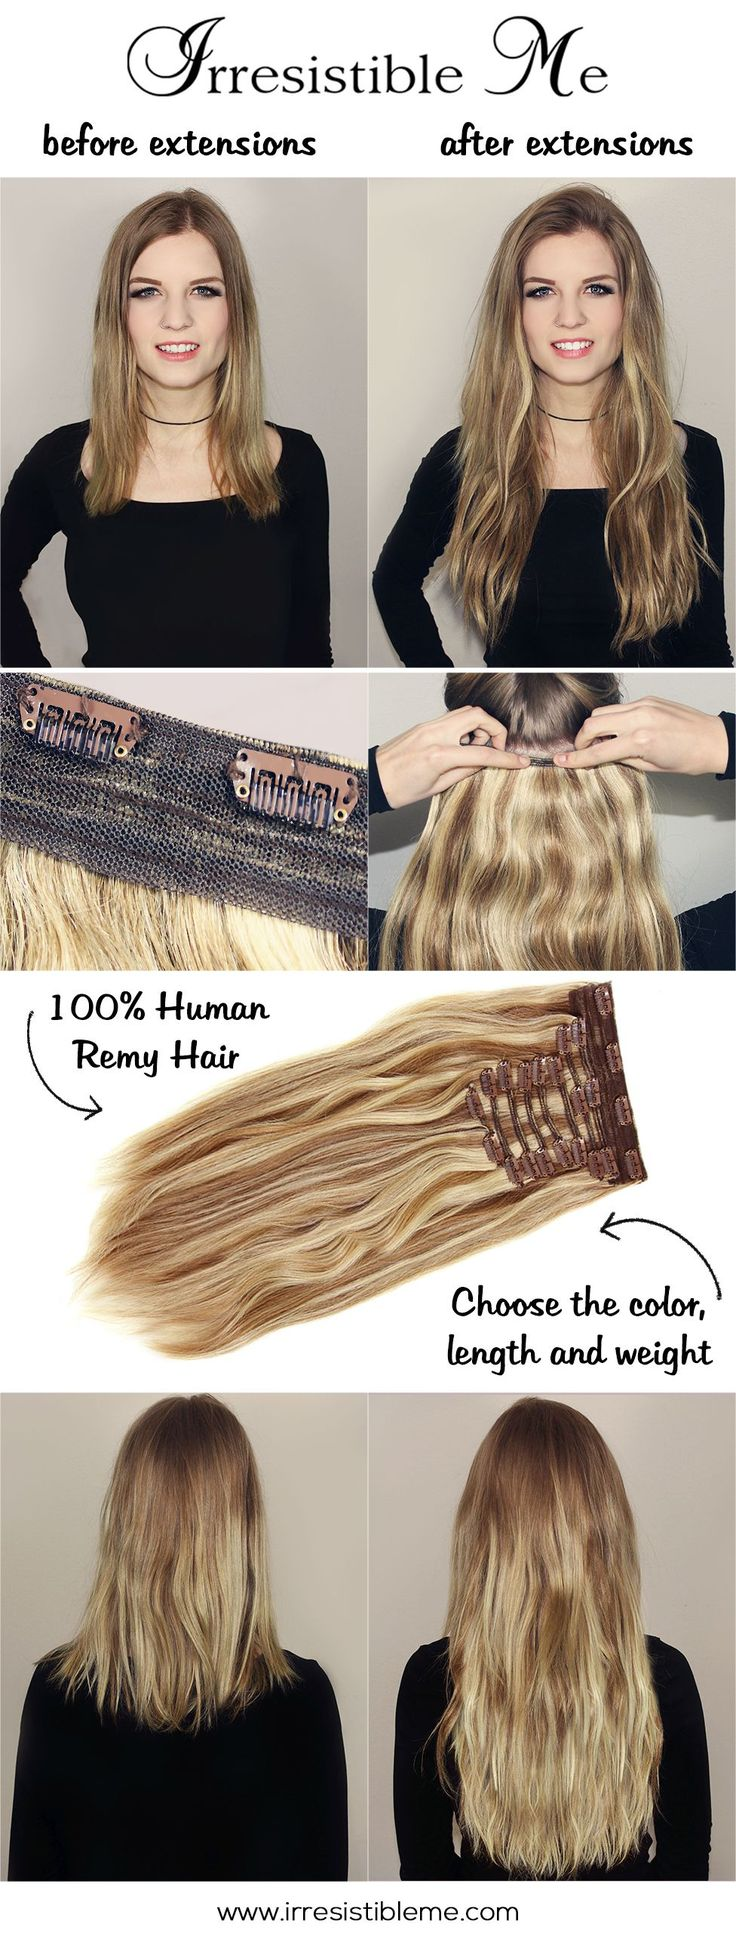 Feel Beautiful At An Affordable Price With Irresistible Me 100 Human Remy Clip In Hair Extensions Choose Your Color Length And Weight From Various